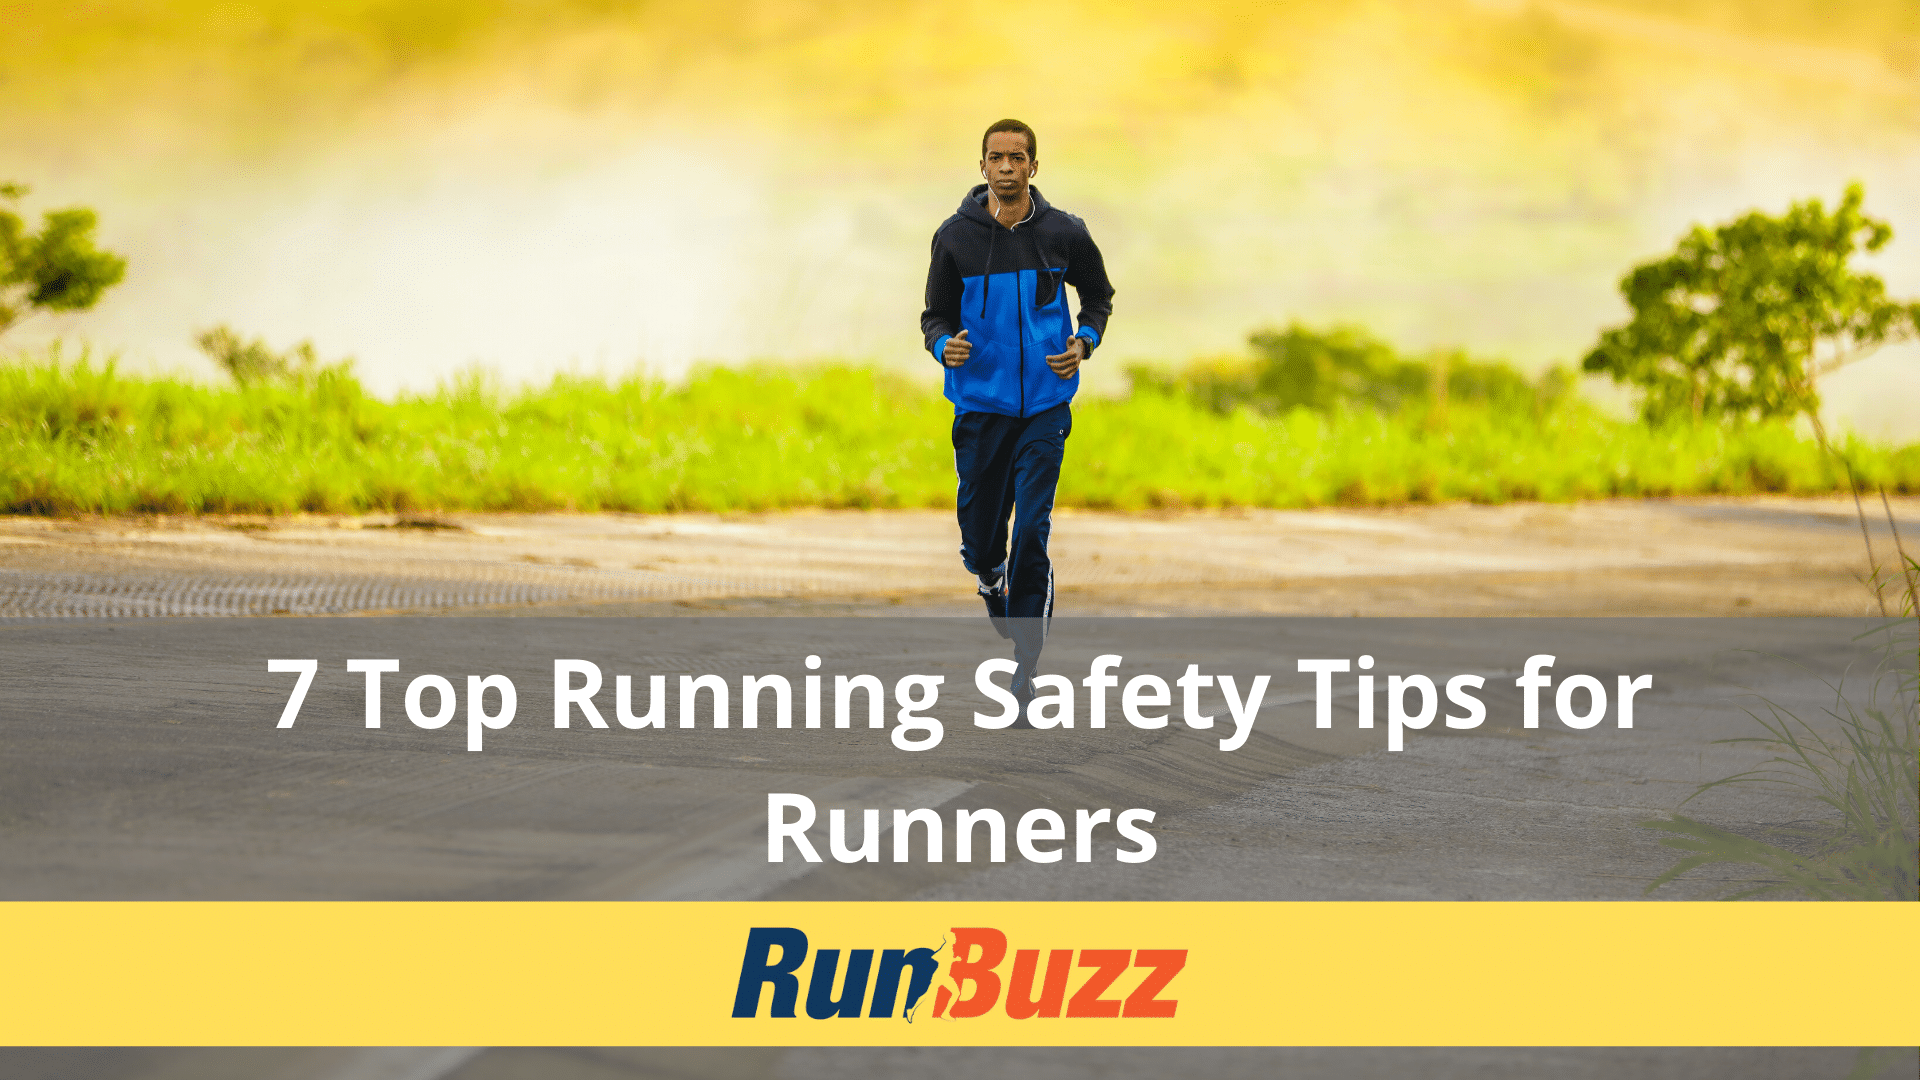 7-Top-Running-Safety-Tips-For-Runners